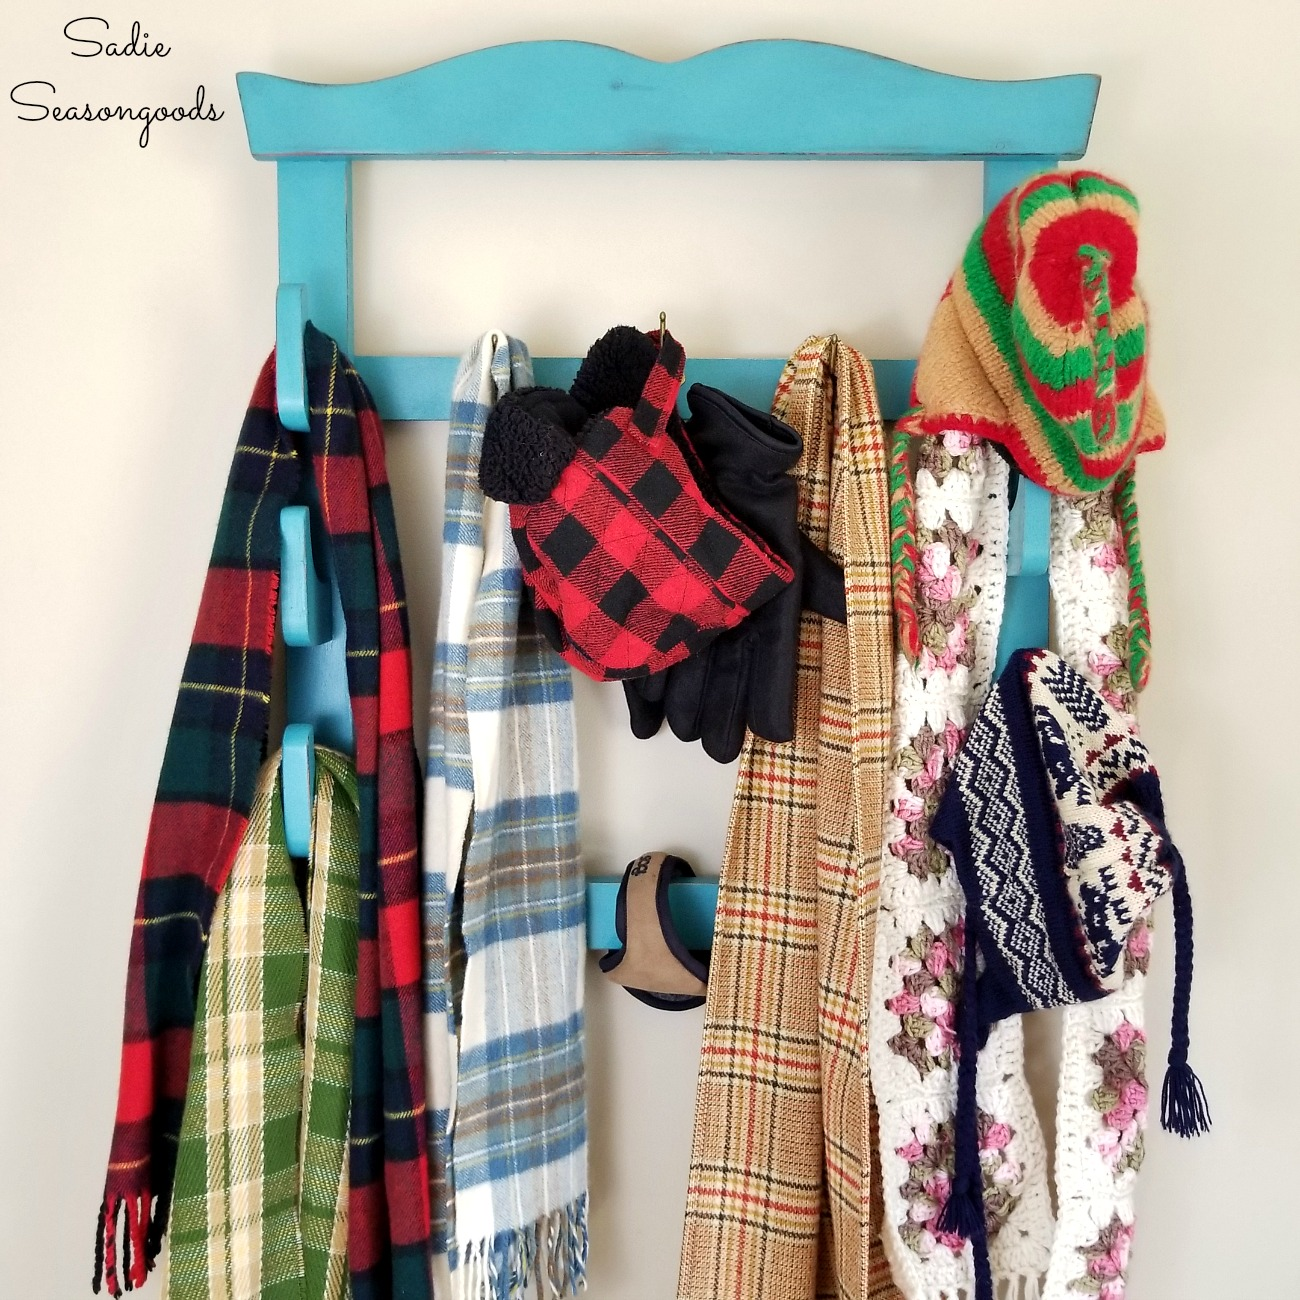 How to Make a Wall Mounted Coat Rack by Upcycling a Wall Gun Rack